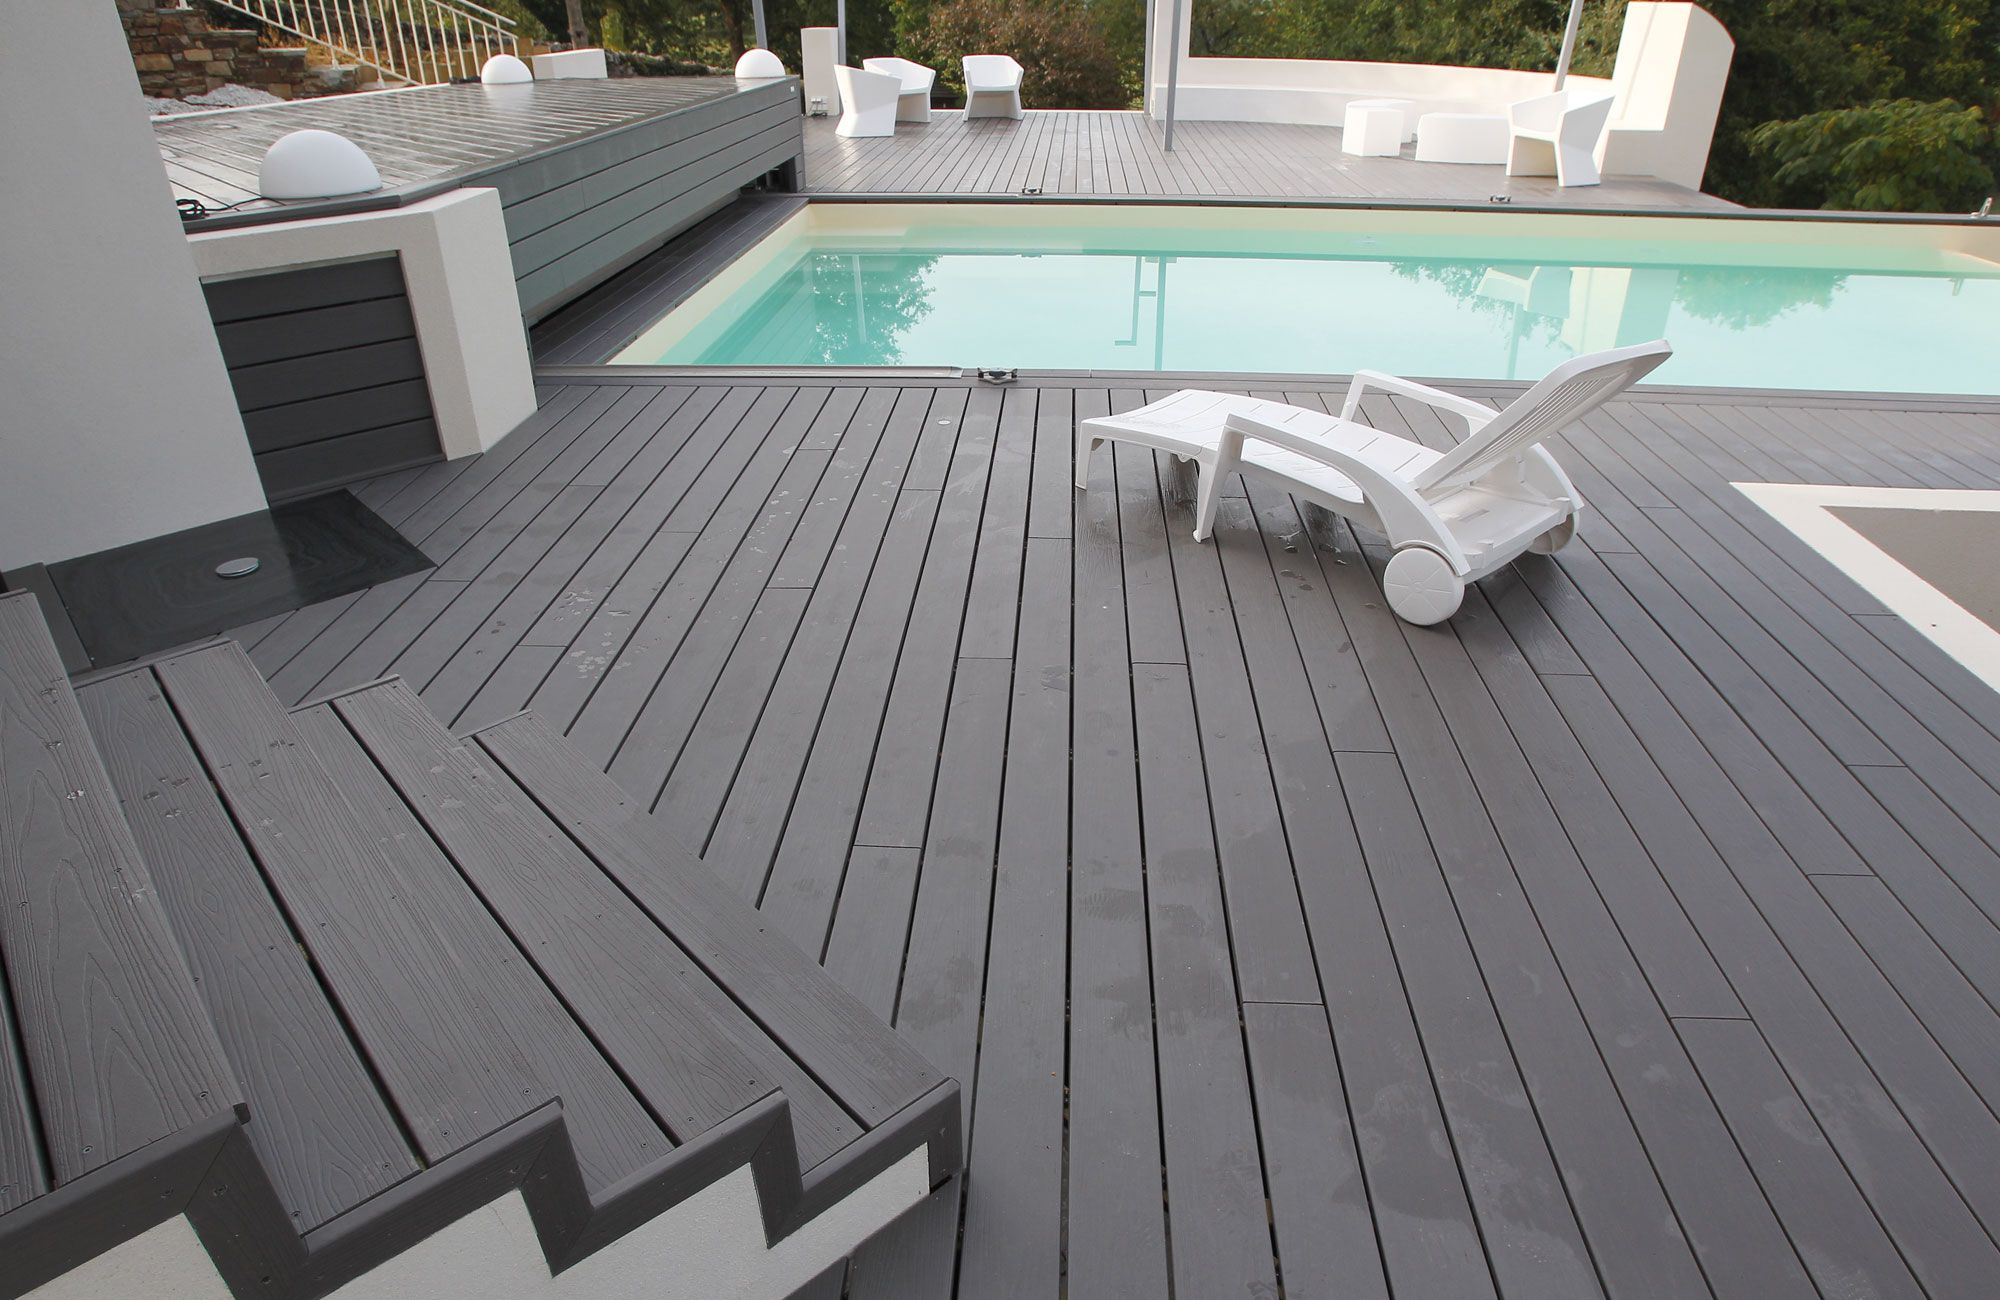 Lame Terrasse Bois Composite Lame Posite Decking Posite Material Decking